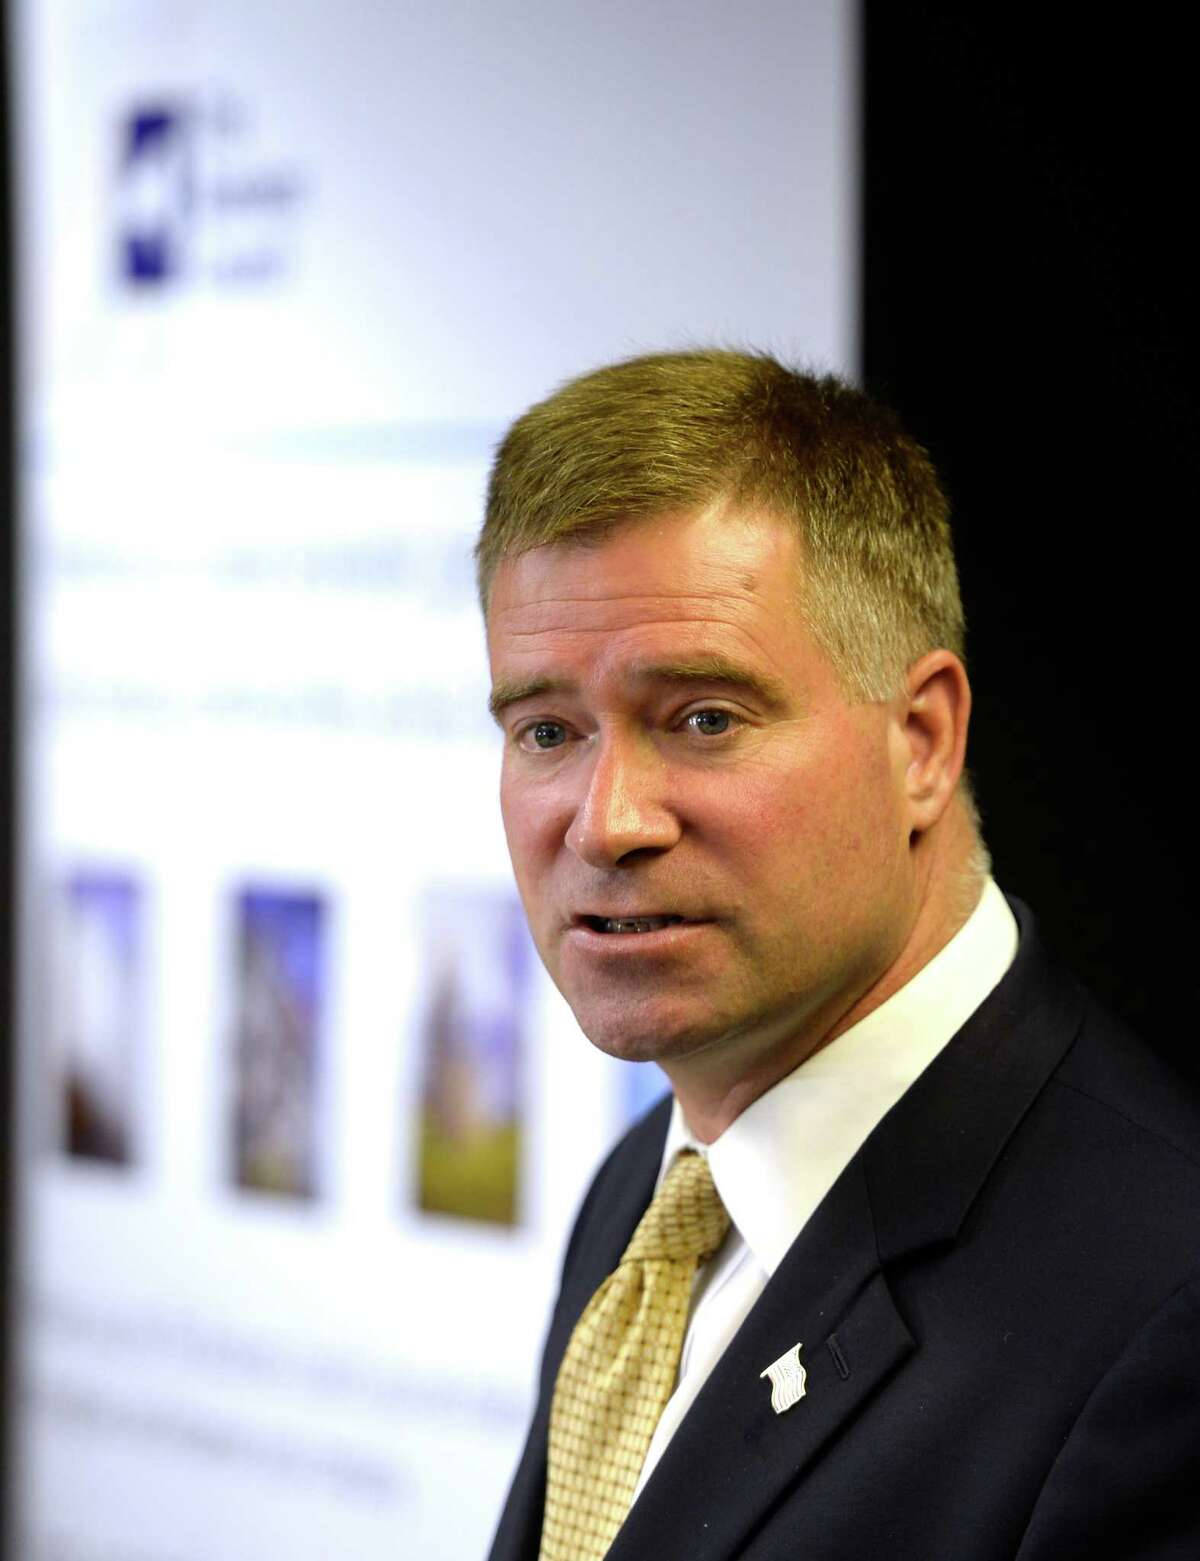 Congressman Chris Gibson speaks at the NY Business Council round table this morning Sept 4, 2013 in Albany, N.Y. ( Skip Dickstein/Times Union )